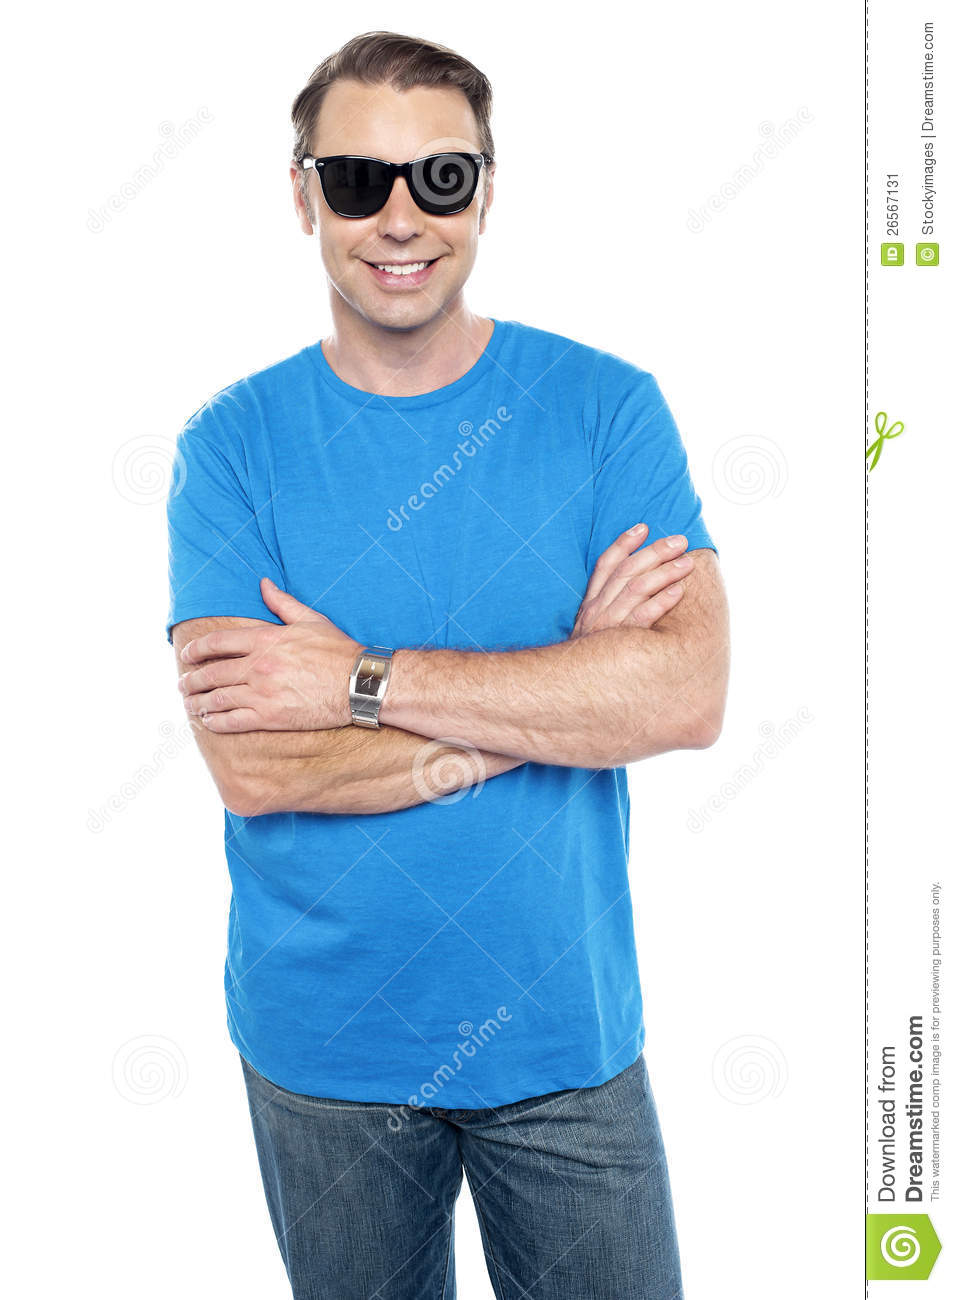 Cool Dude Wearing Goggles Posing With Arms Crossed  Isolated On White